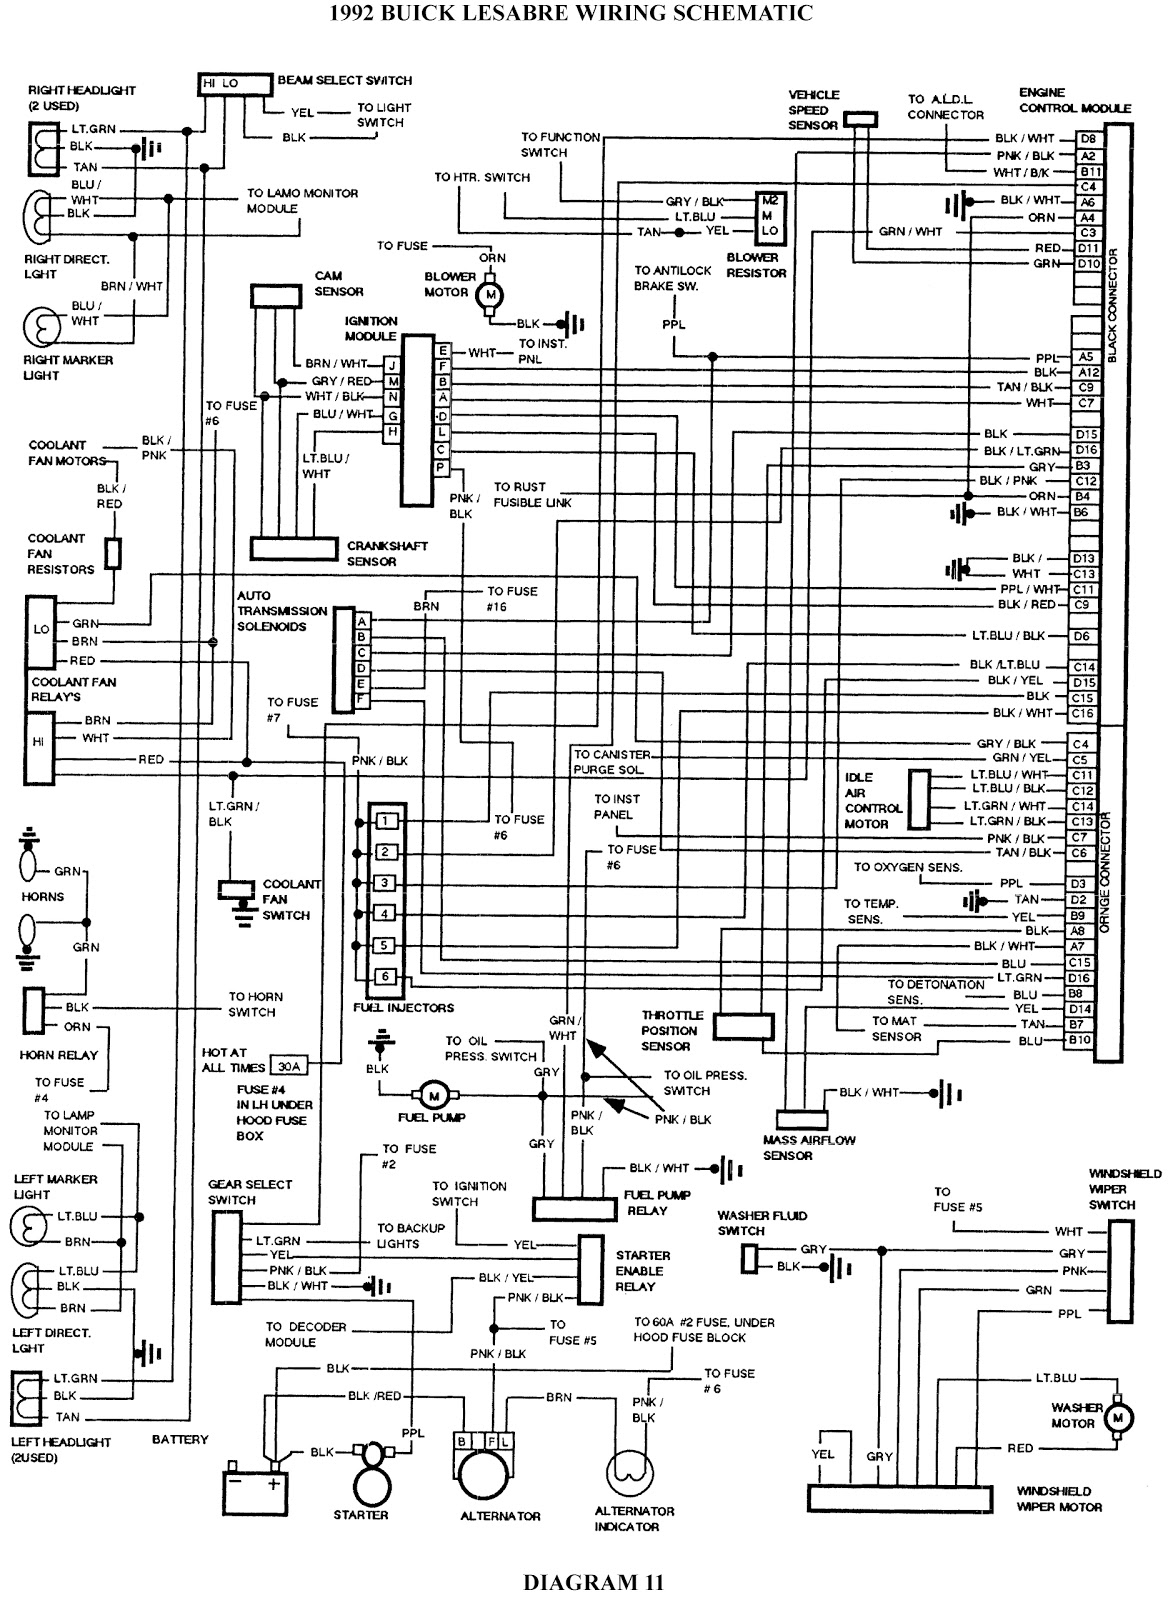 2003 jeep radio wiring diagrams with 1992 Buick Lesabre Wiring Schematic on 1964 F 100 Ford Truck Exterior Lighting Turn Signals Horn Circuit And Wiring Harness Diagram additionally 2002 Mercury Mountaineer Fuse Box besides 1992 Buick Lesabre Wiring Schematic in addition Jeep Cherokee88 Engine Cooling Fan Circuit And Wiring Diagram likewise Pt Cruiser Vacuum Line Diagram.